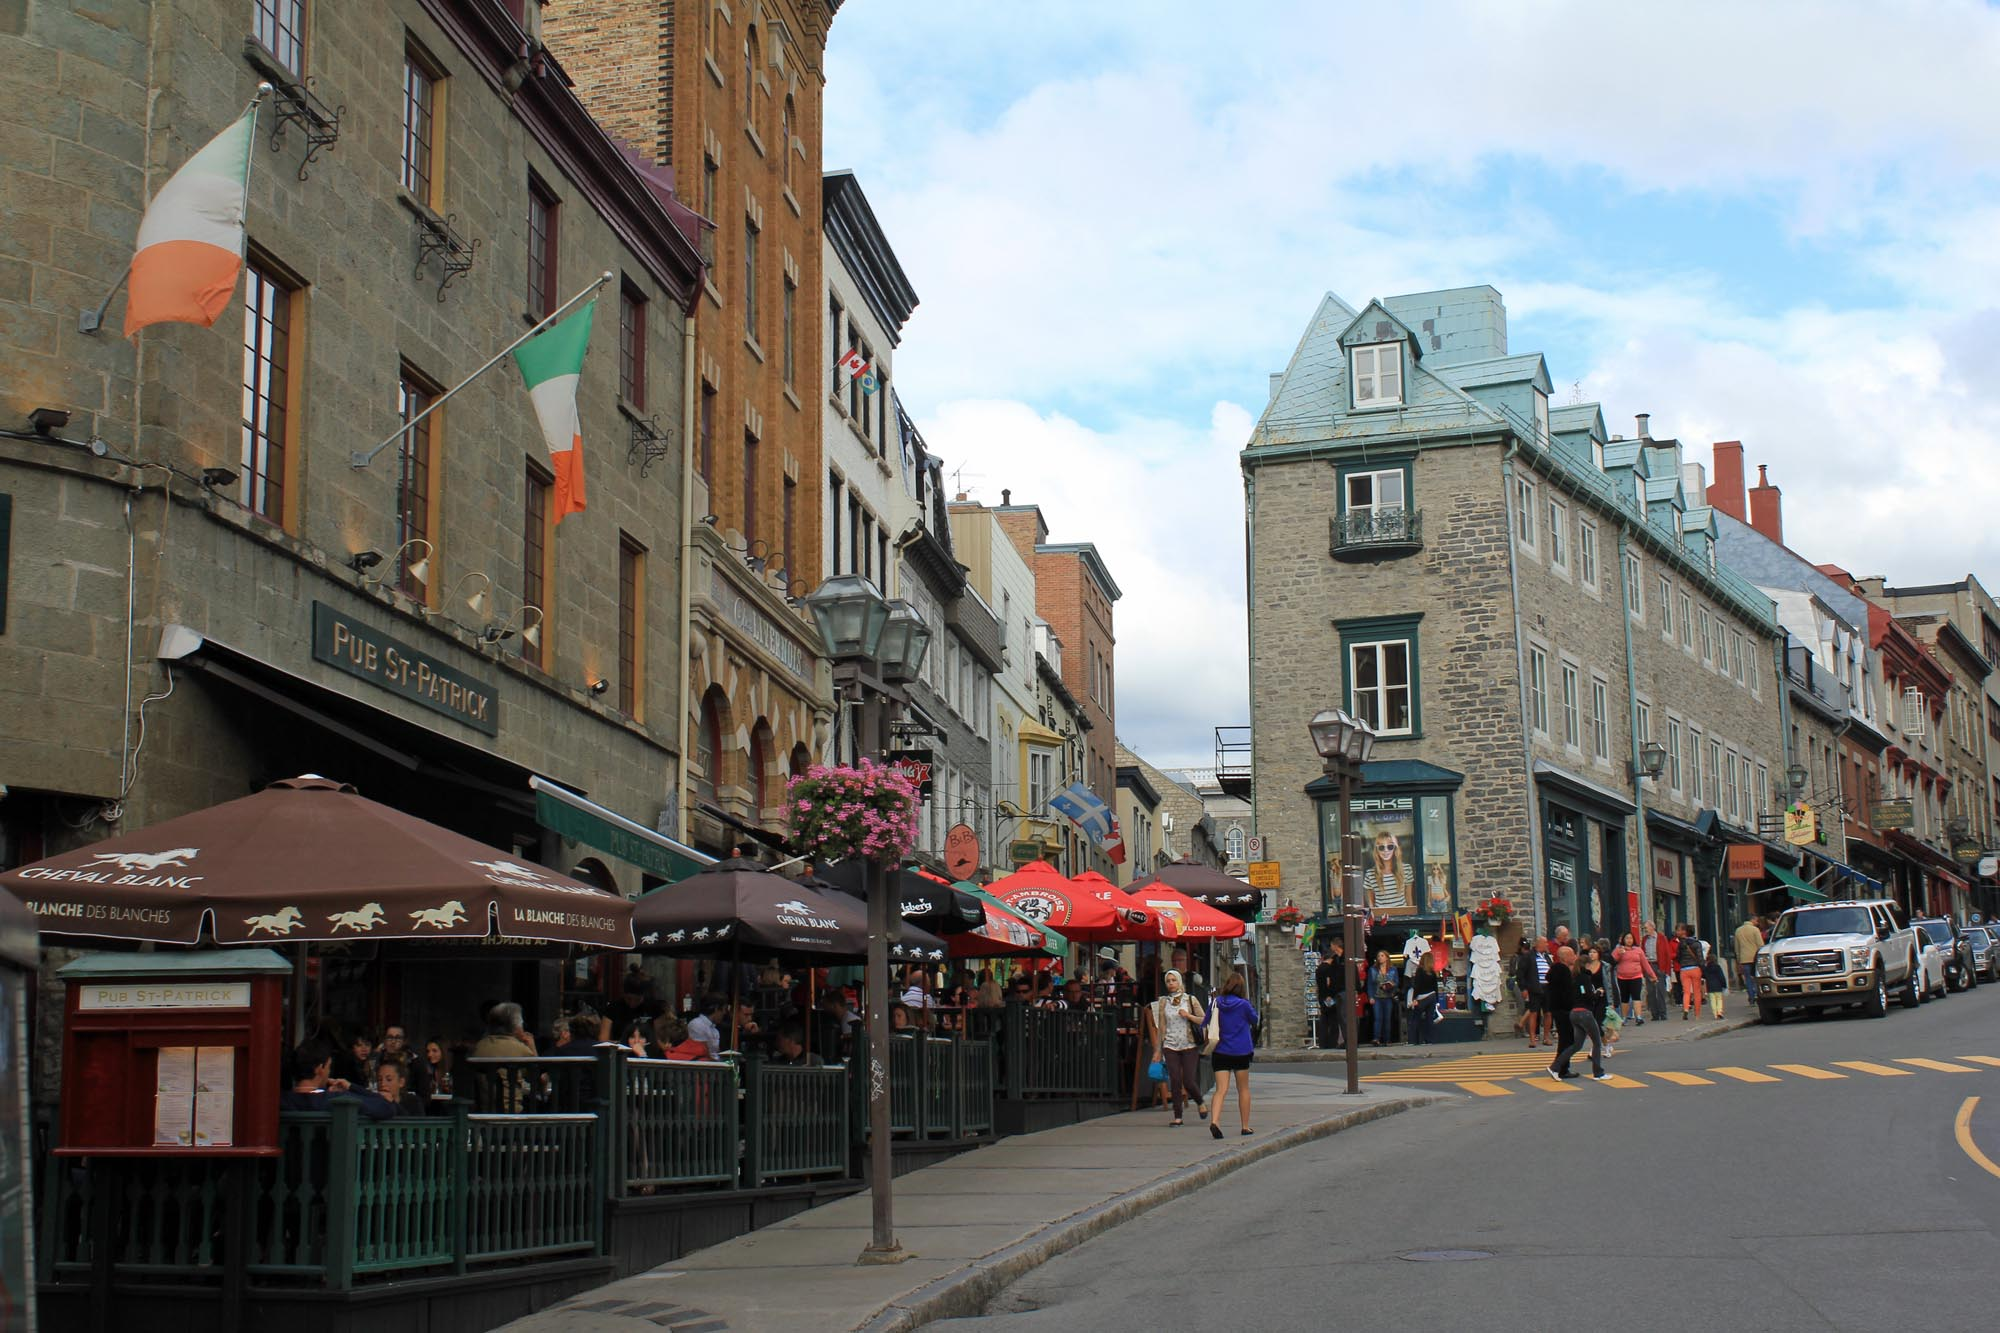 Quebec City, Côte de la Fabrique